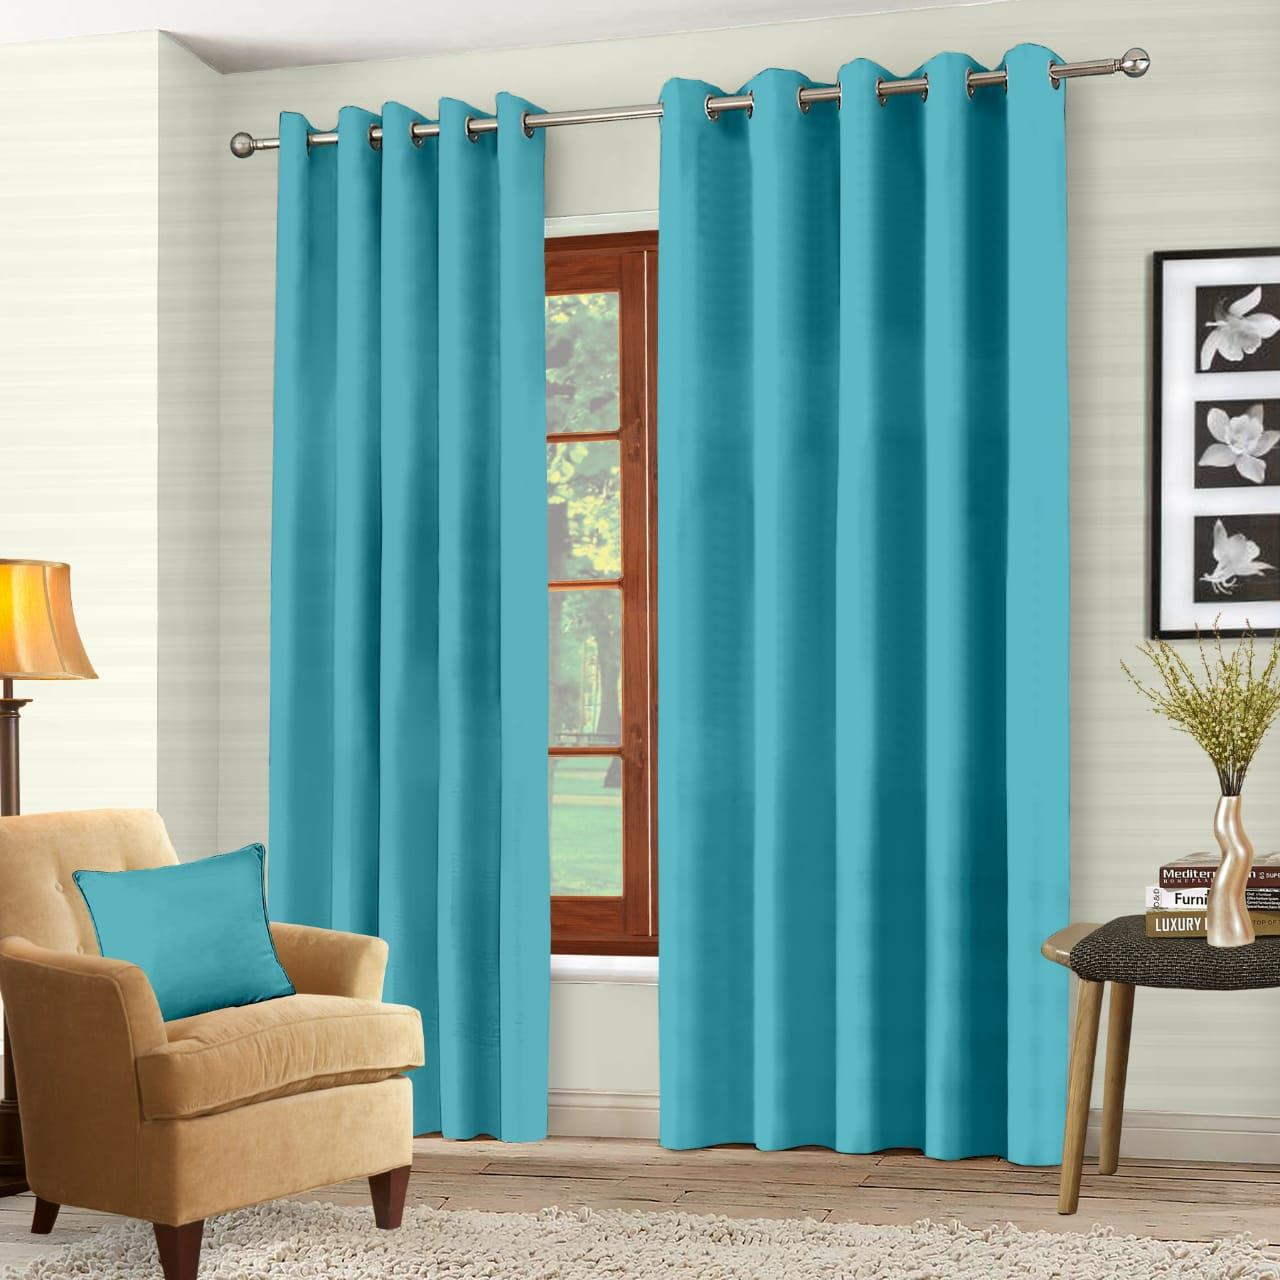 Luxury-Thermal-Blackout-Eyelet-Ring-Top-Curtains-Pair-with-tie-backs thumbnail 54